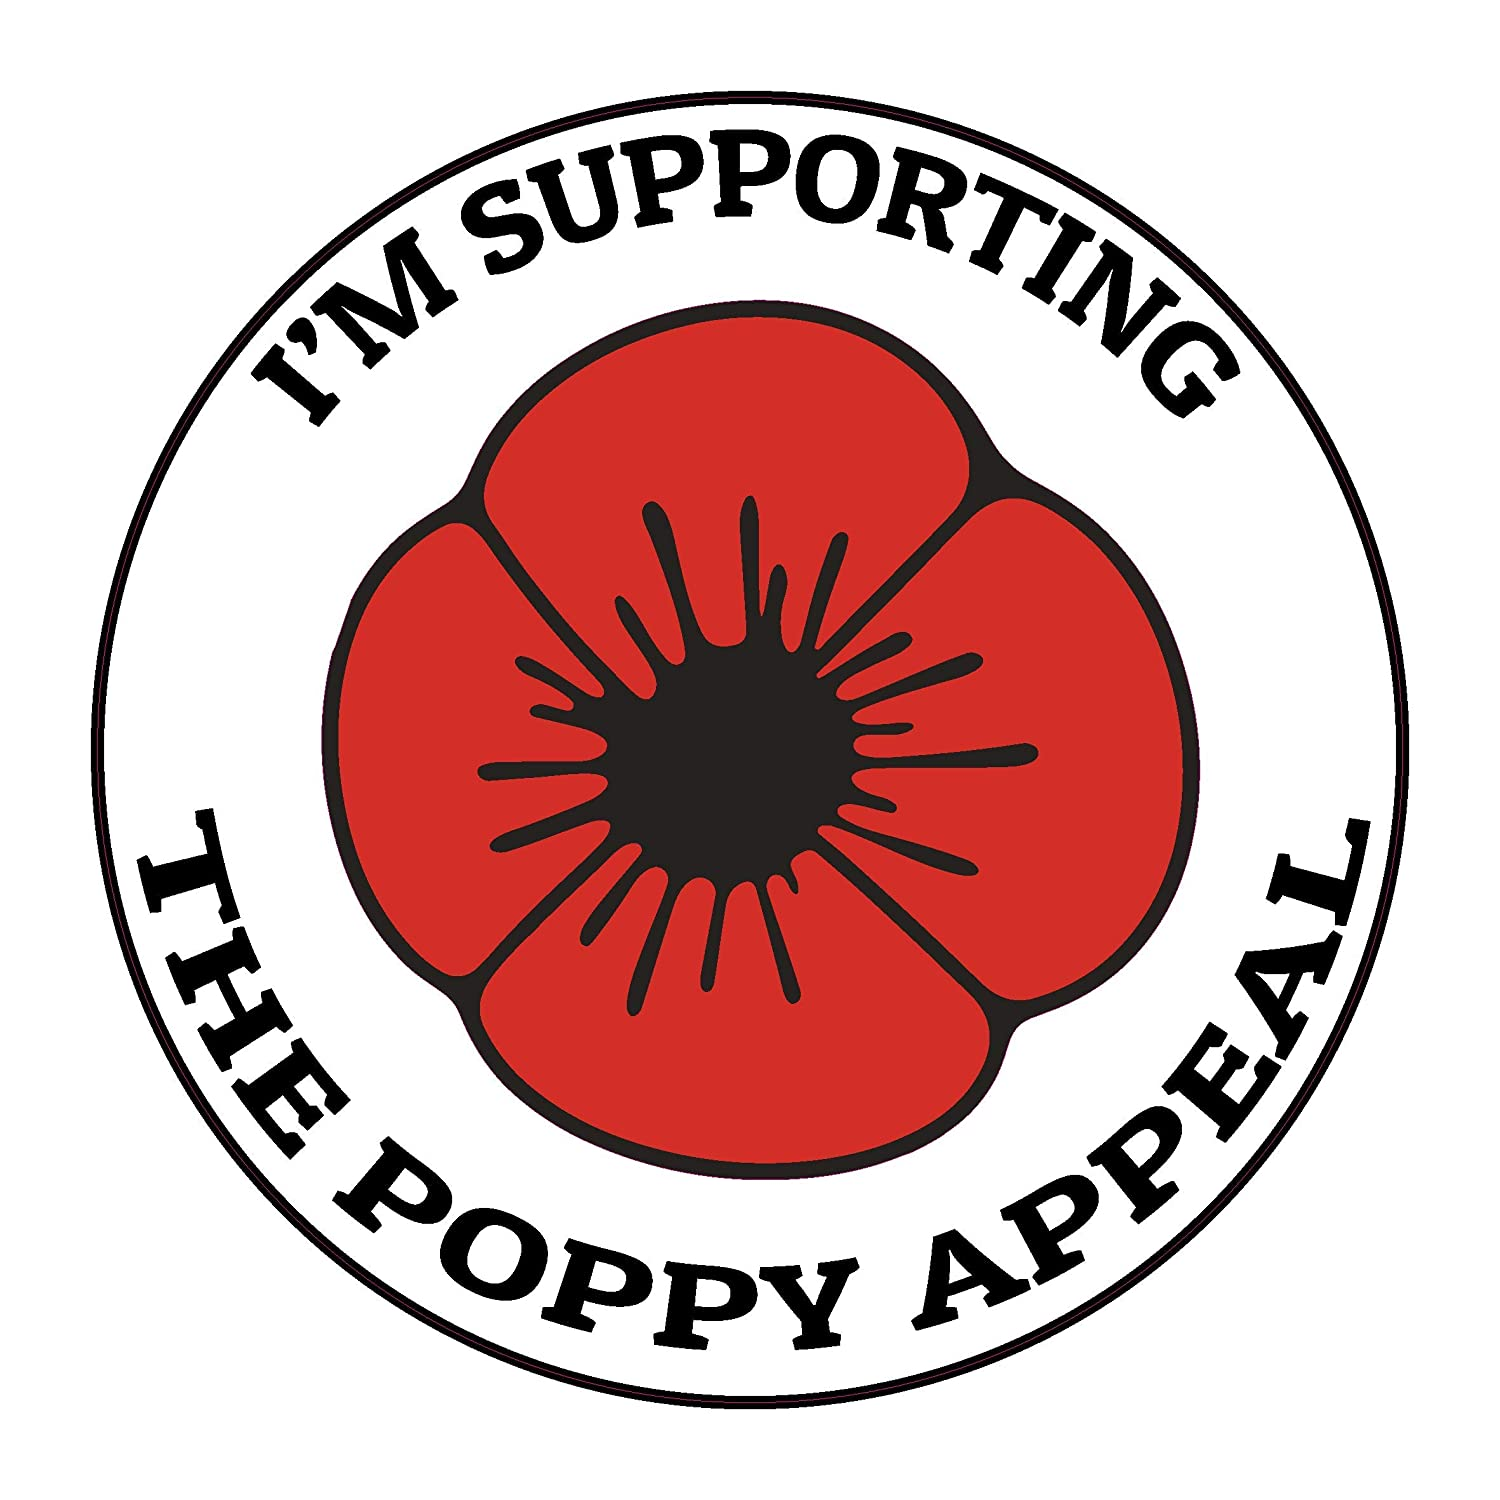 Influent UK I support poppy appeal Lest We Forget Remembrance Day Sticker, Mug, Poppy Flower Decal, Car, Window, Fridge, Laptop Sticker (Large) Influent-UK